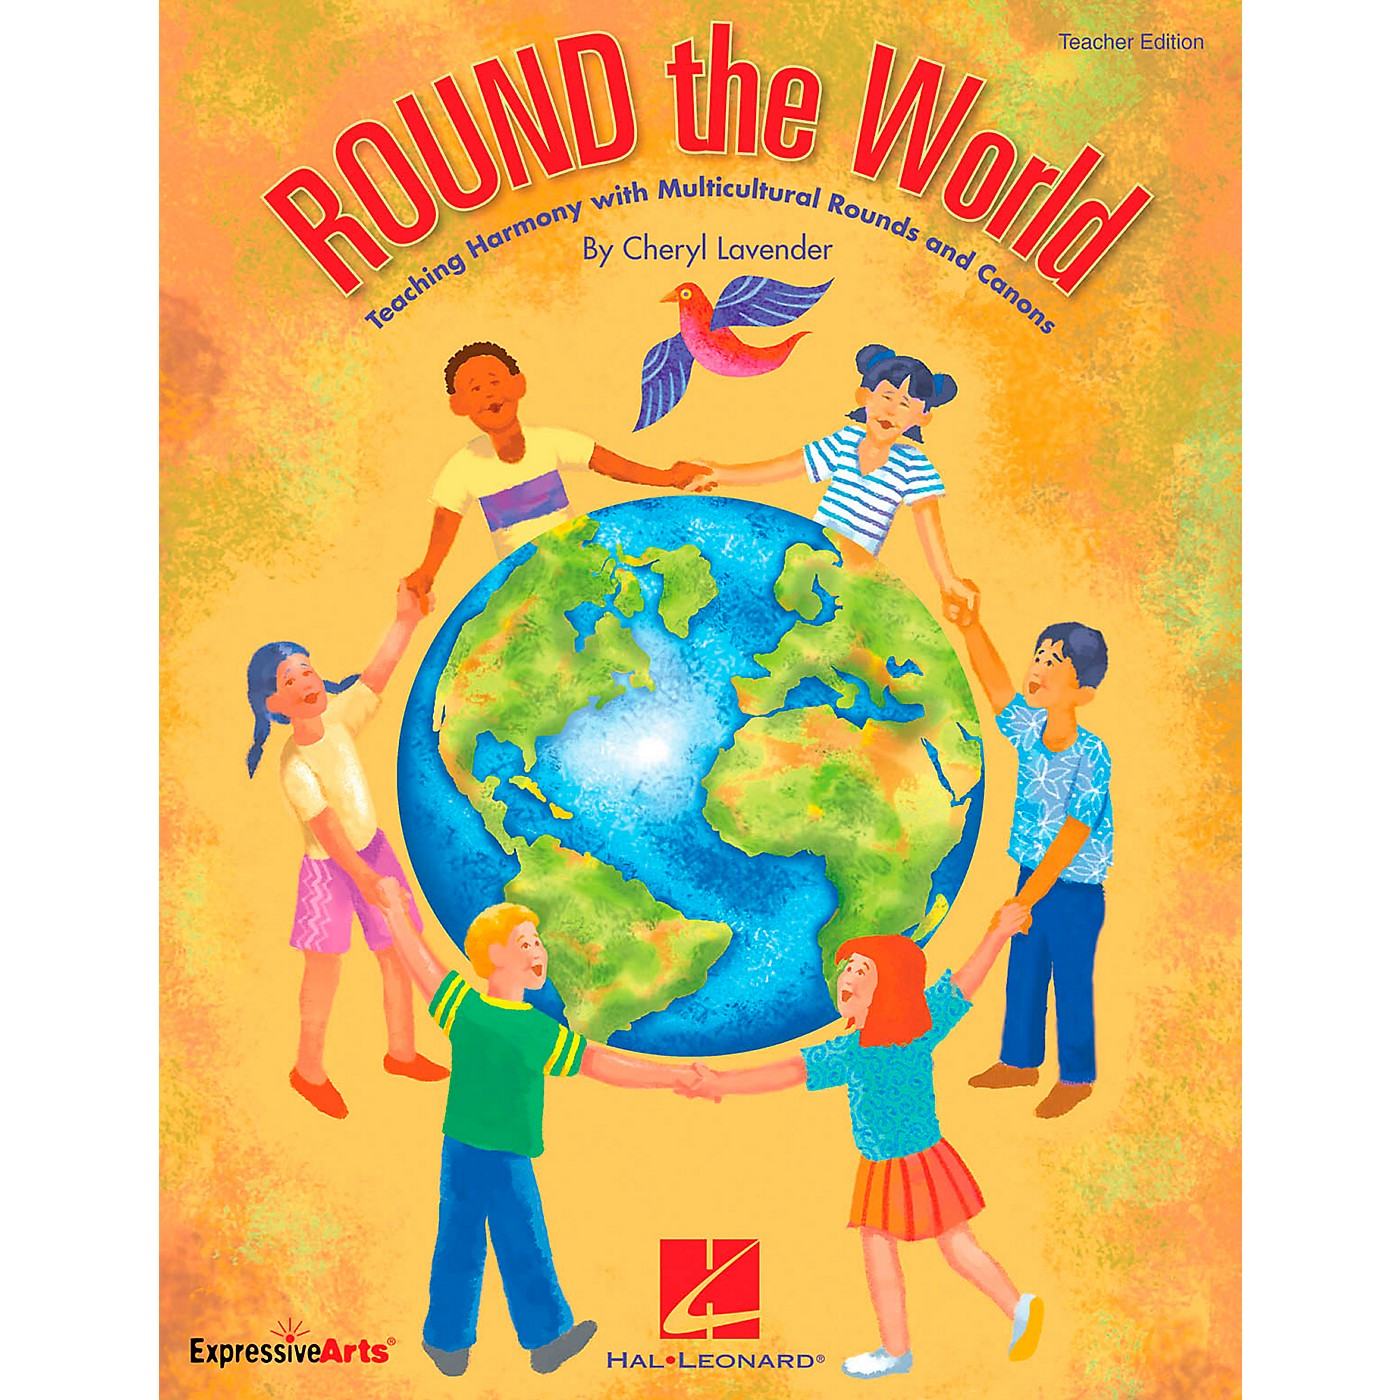 Hal Leonard ROUND The World - Teaching Harmony Multicultural Rounds And Canons Classroom Kit thumbnail